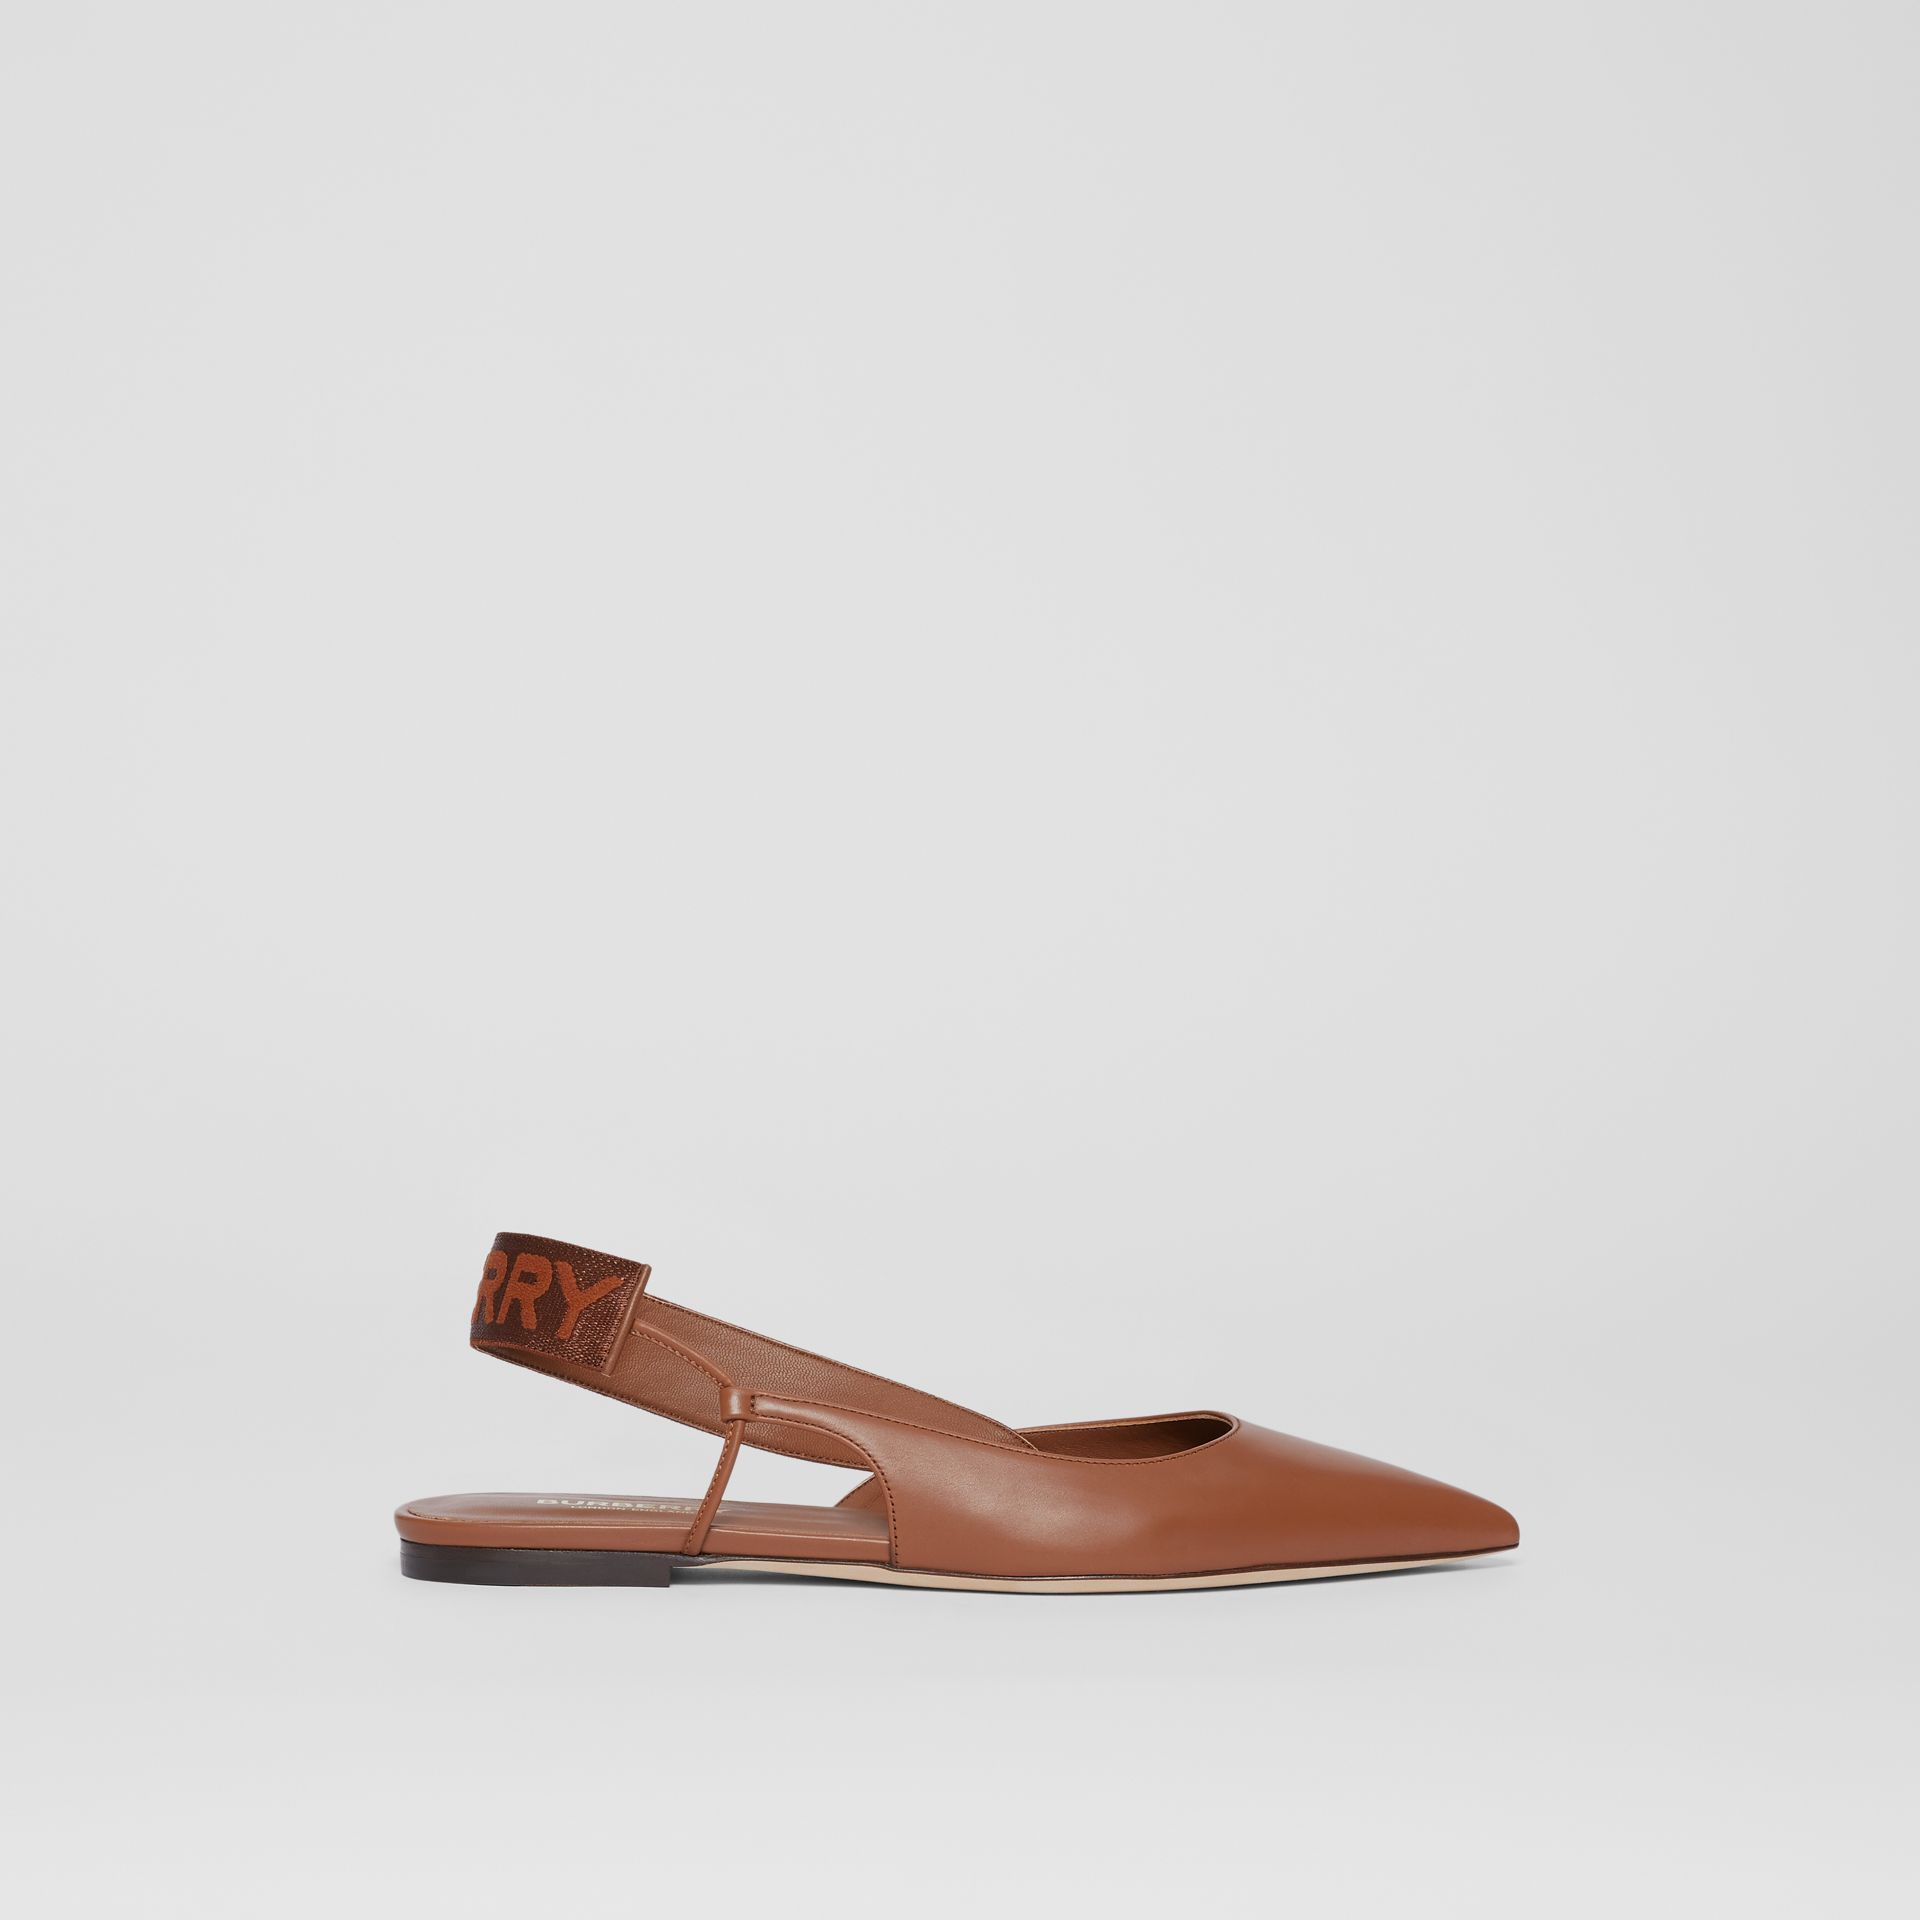 Logo Detail Leather Slingback Flats in Tan - Women | Burberry Canada - gallery image 4